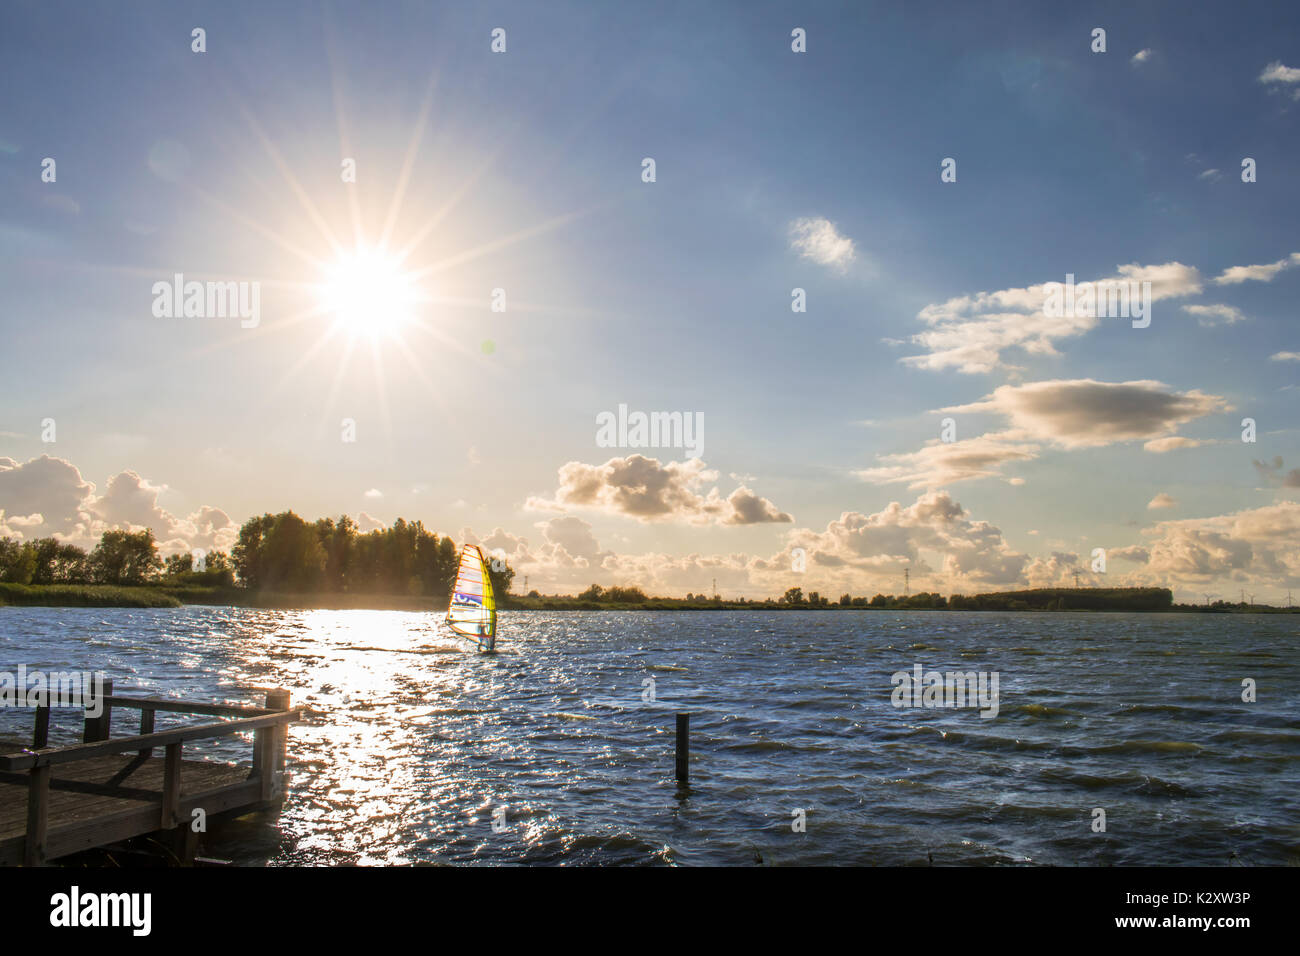 Watersport surfing lake in sunset - Stock Image